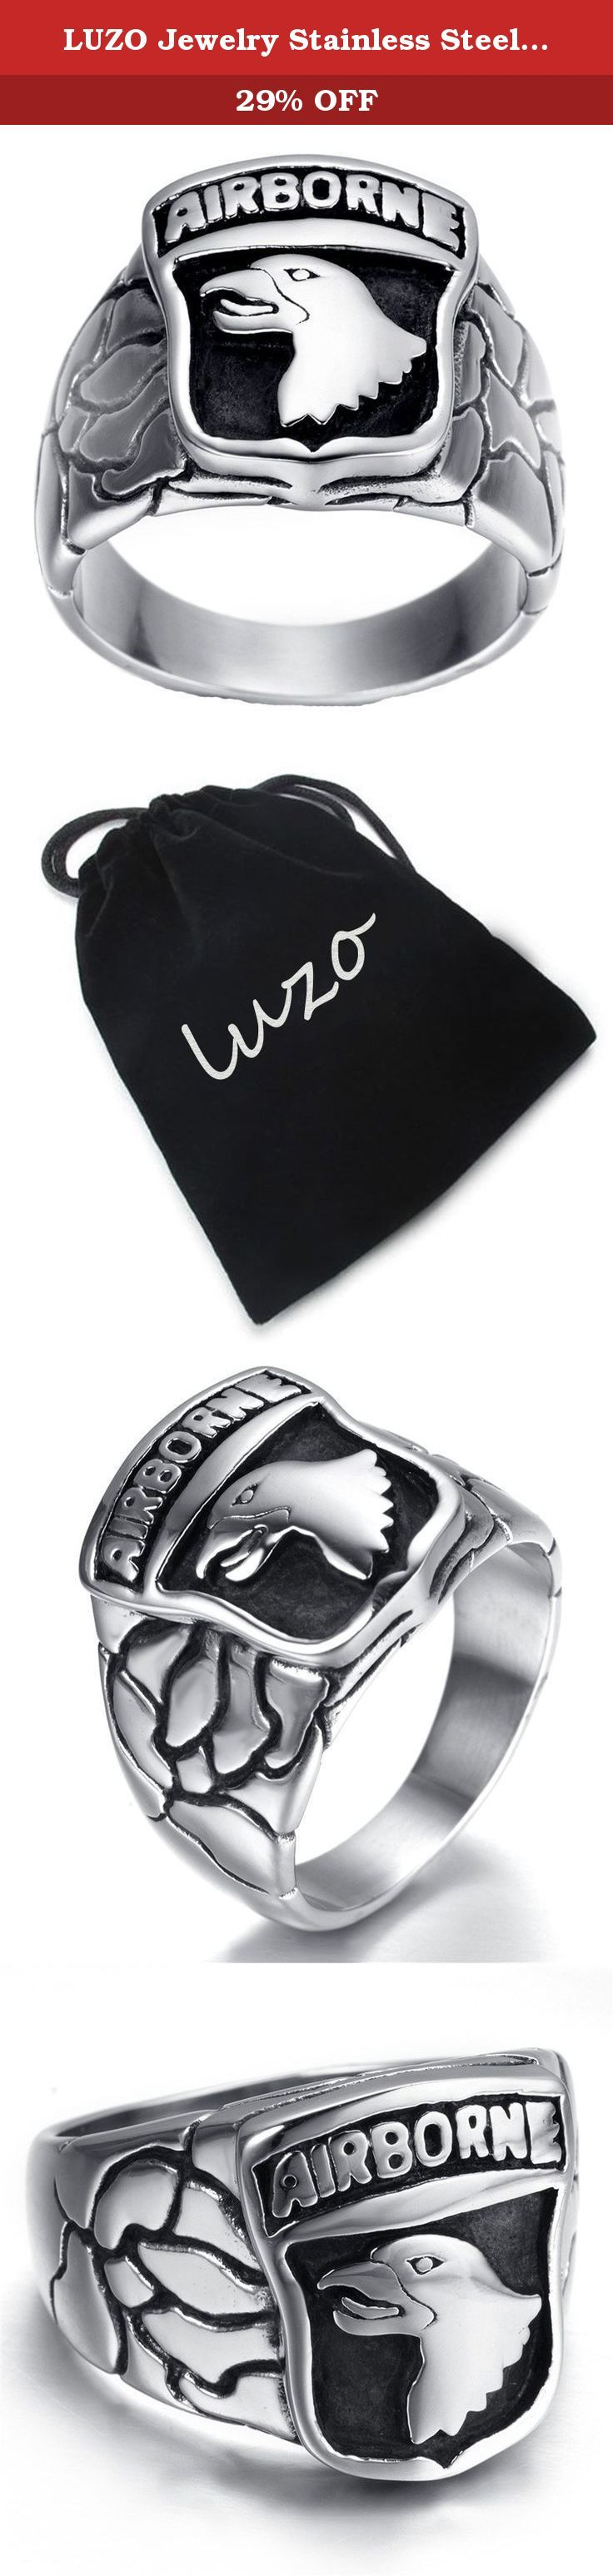 LUZO Jewelry Stainless Steel 101st AIRBORNE Divisions Screaming Eagle US Army Military Ring. Why choose Stainless Steel Jewelry? Stainless Steel jewelry does not tarnish and oxidize, which can last longer than other jewelries. It is able to endure a lot of wear and tear. And it is amazingly hypoallergenic. Such advantages make it a more popular accessory.